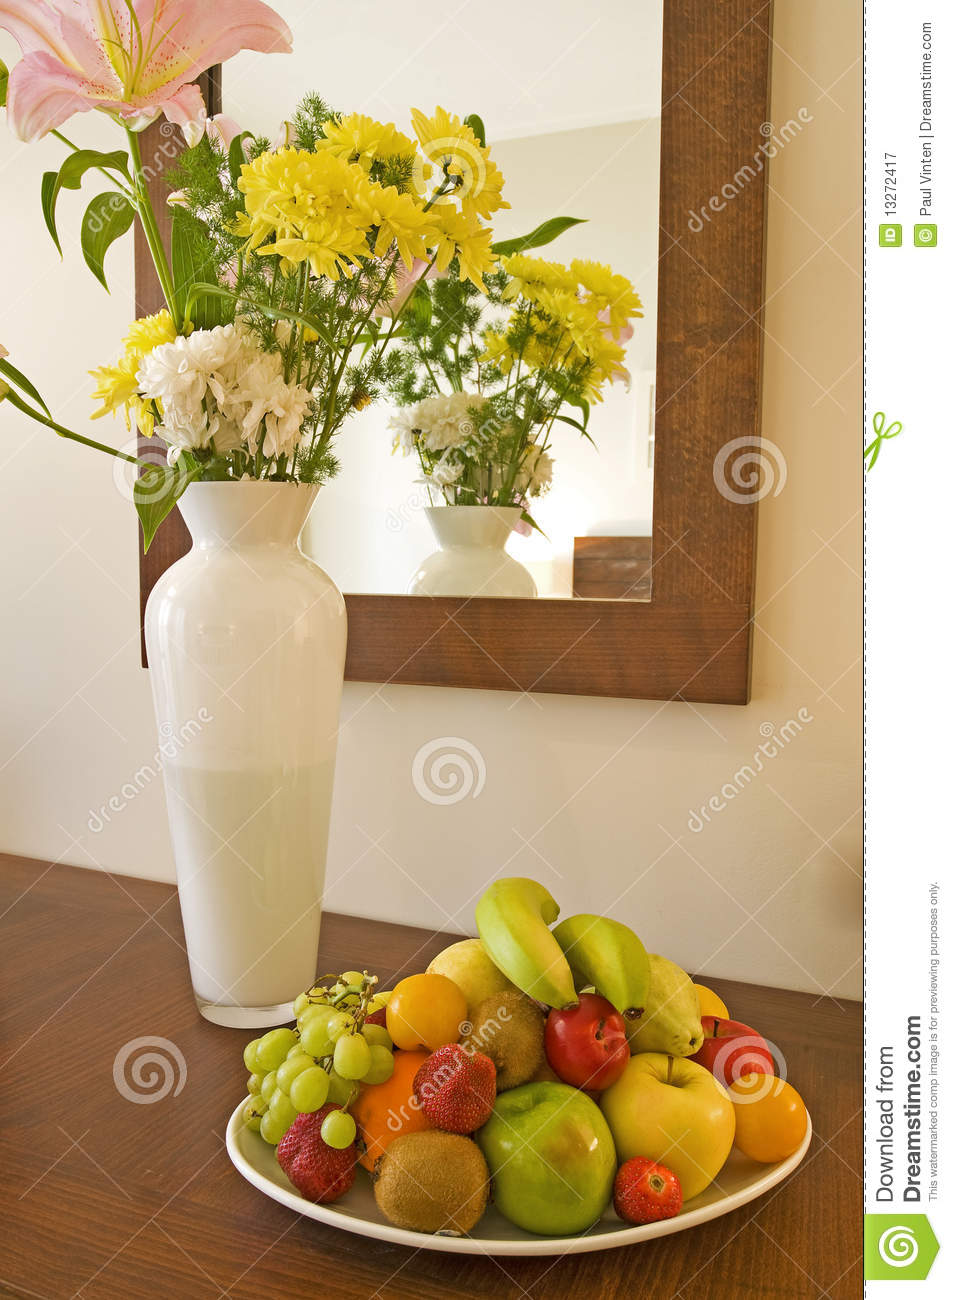 Vase Of Flowers And Fruit On A Table Stock Image  Image